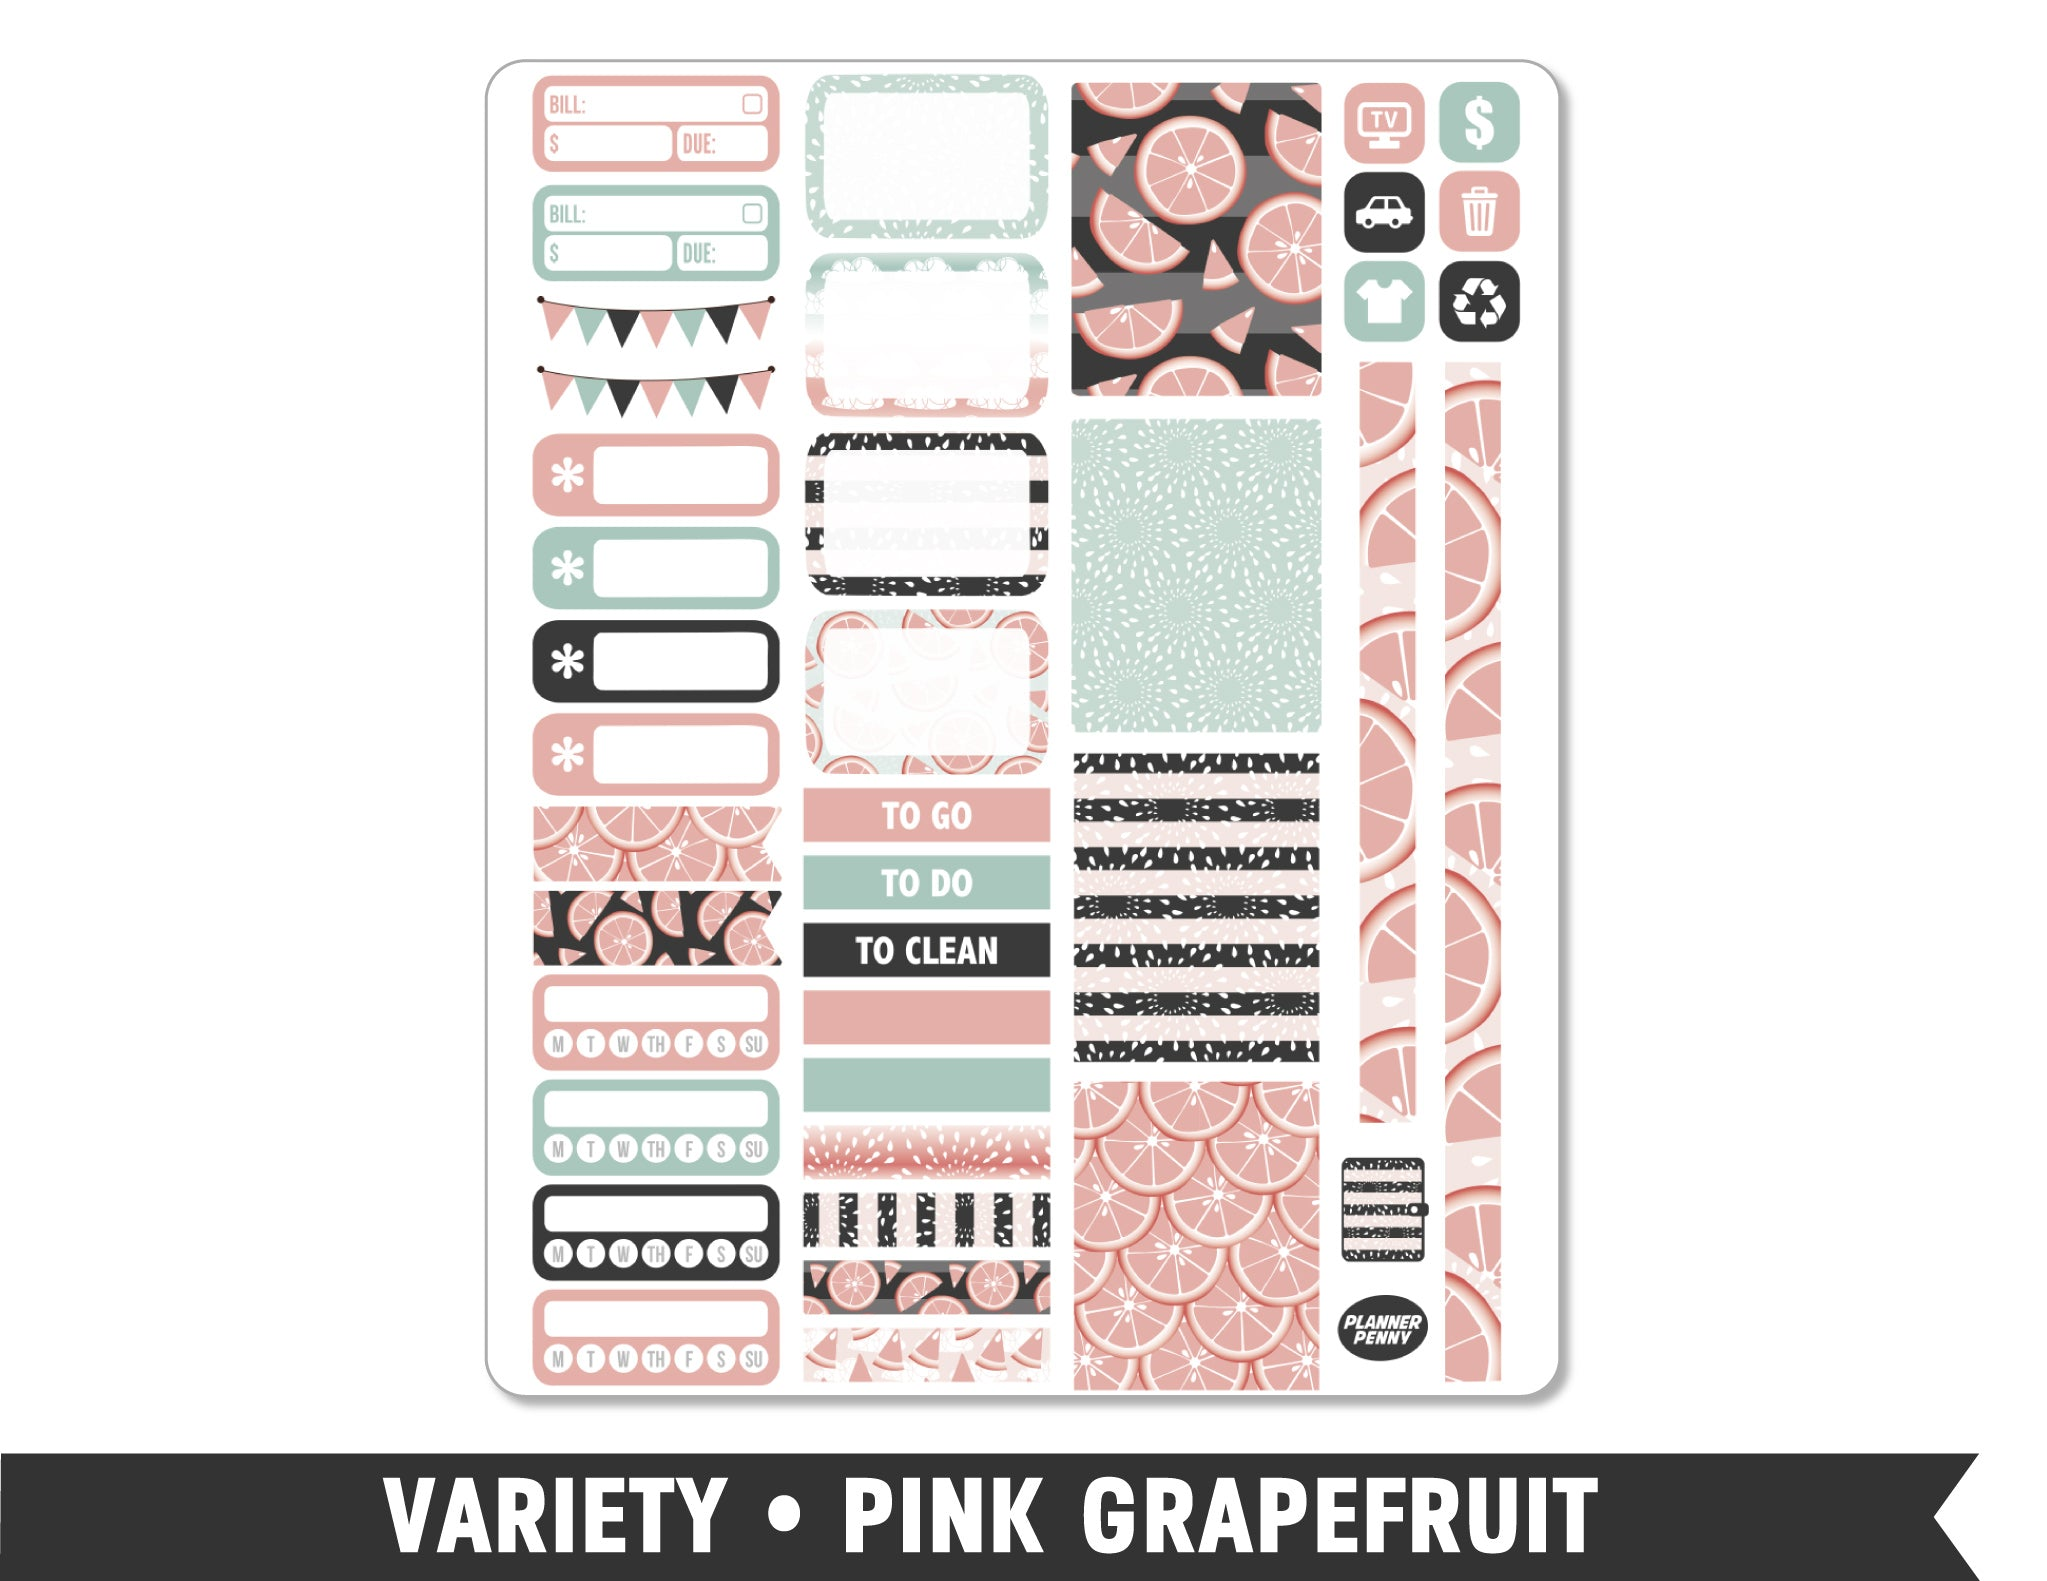 Variety • Pink Grapefruit Weekly Spread Planner Stickers - Planner Penny